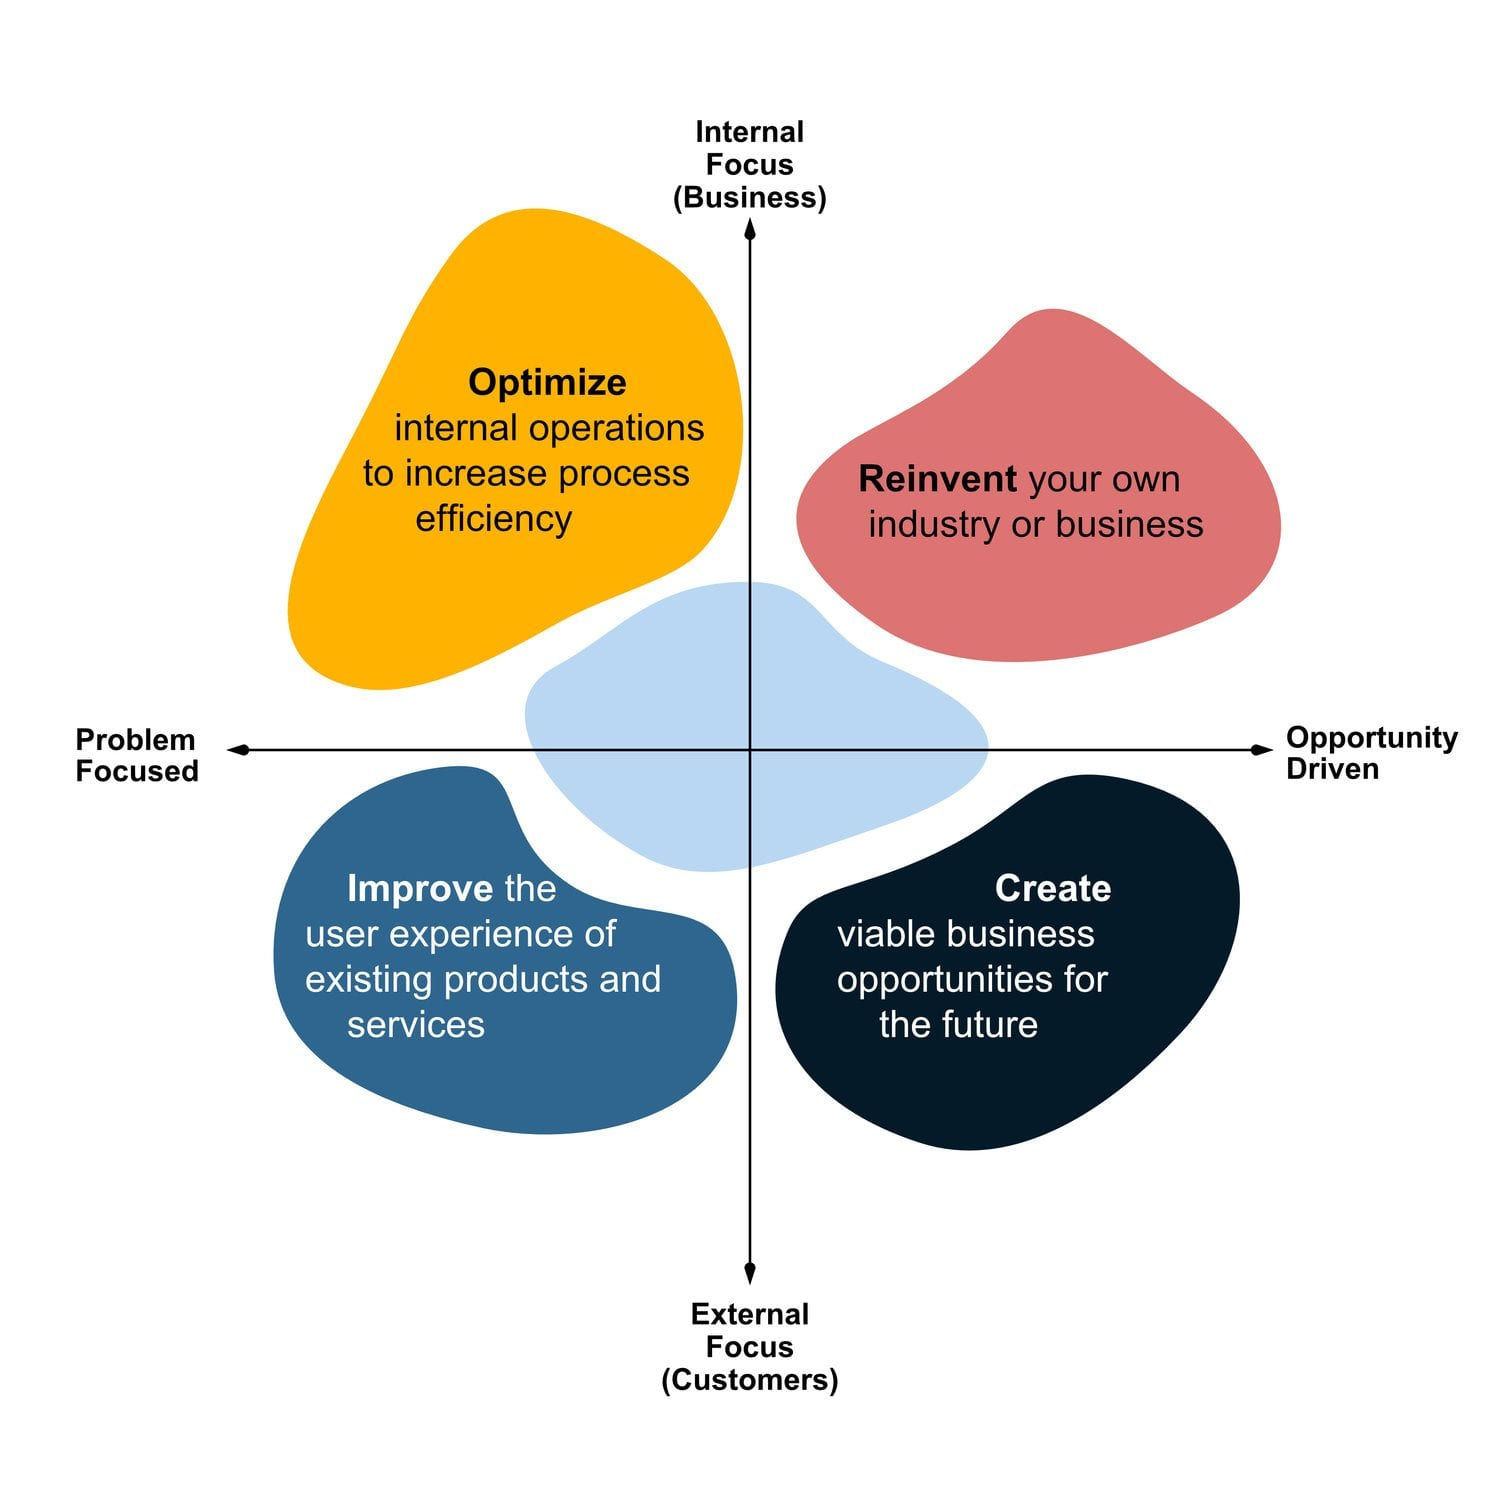 Innovate Strategy's Innovation Framework that intersects internal and external focuses